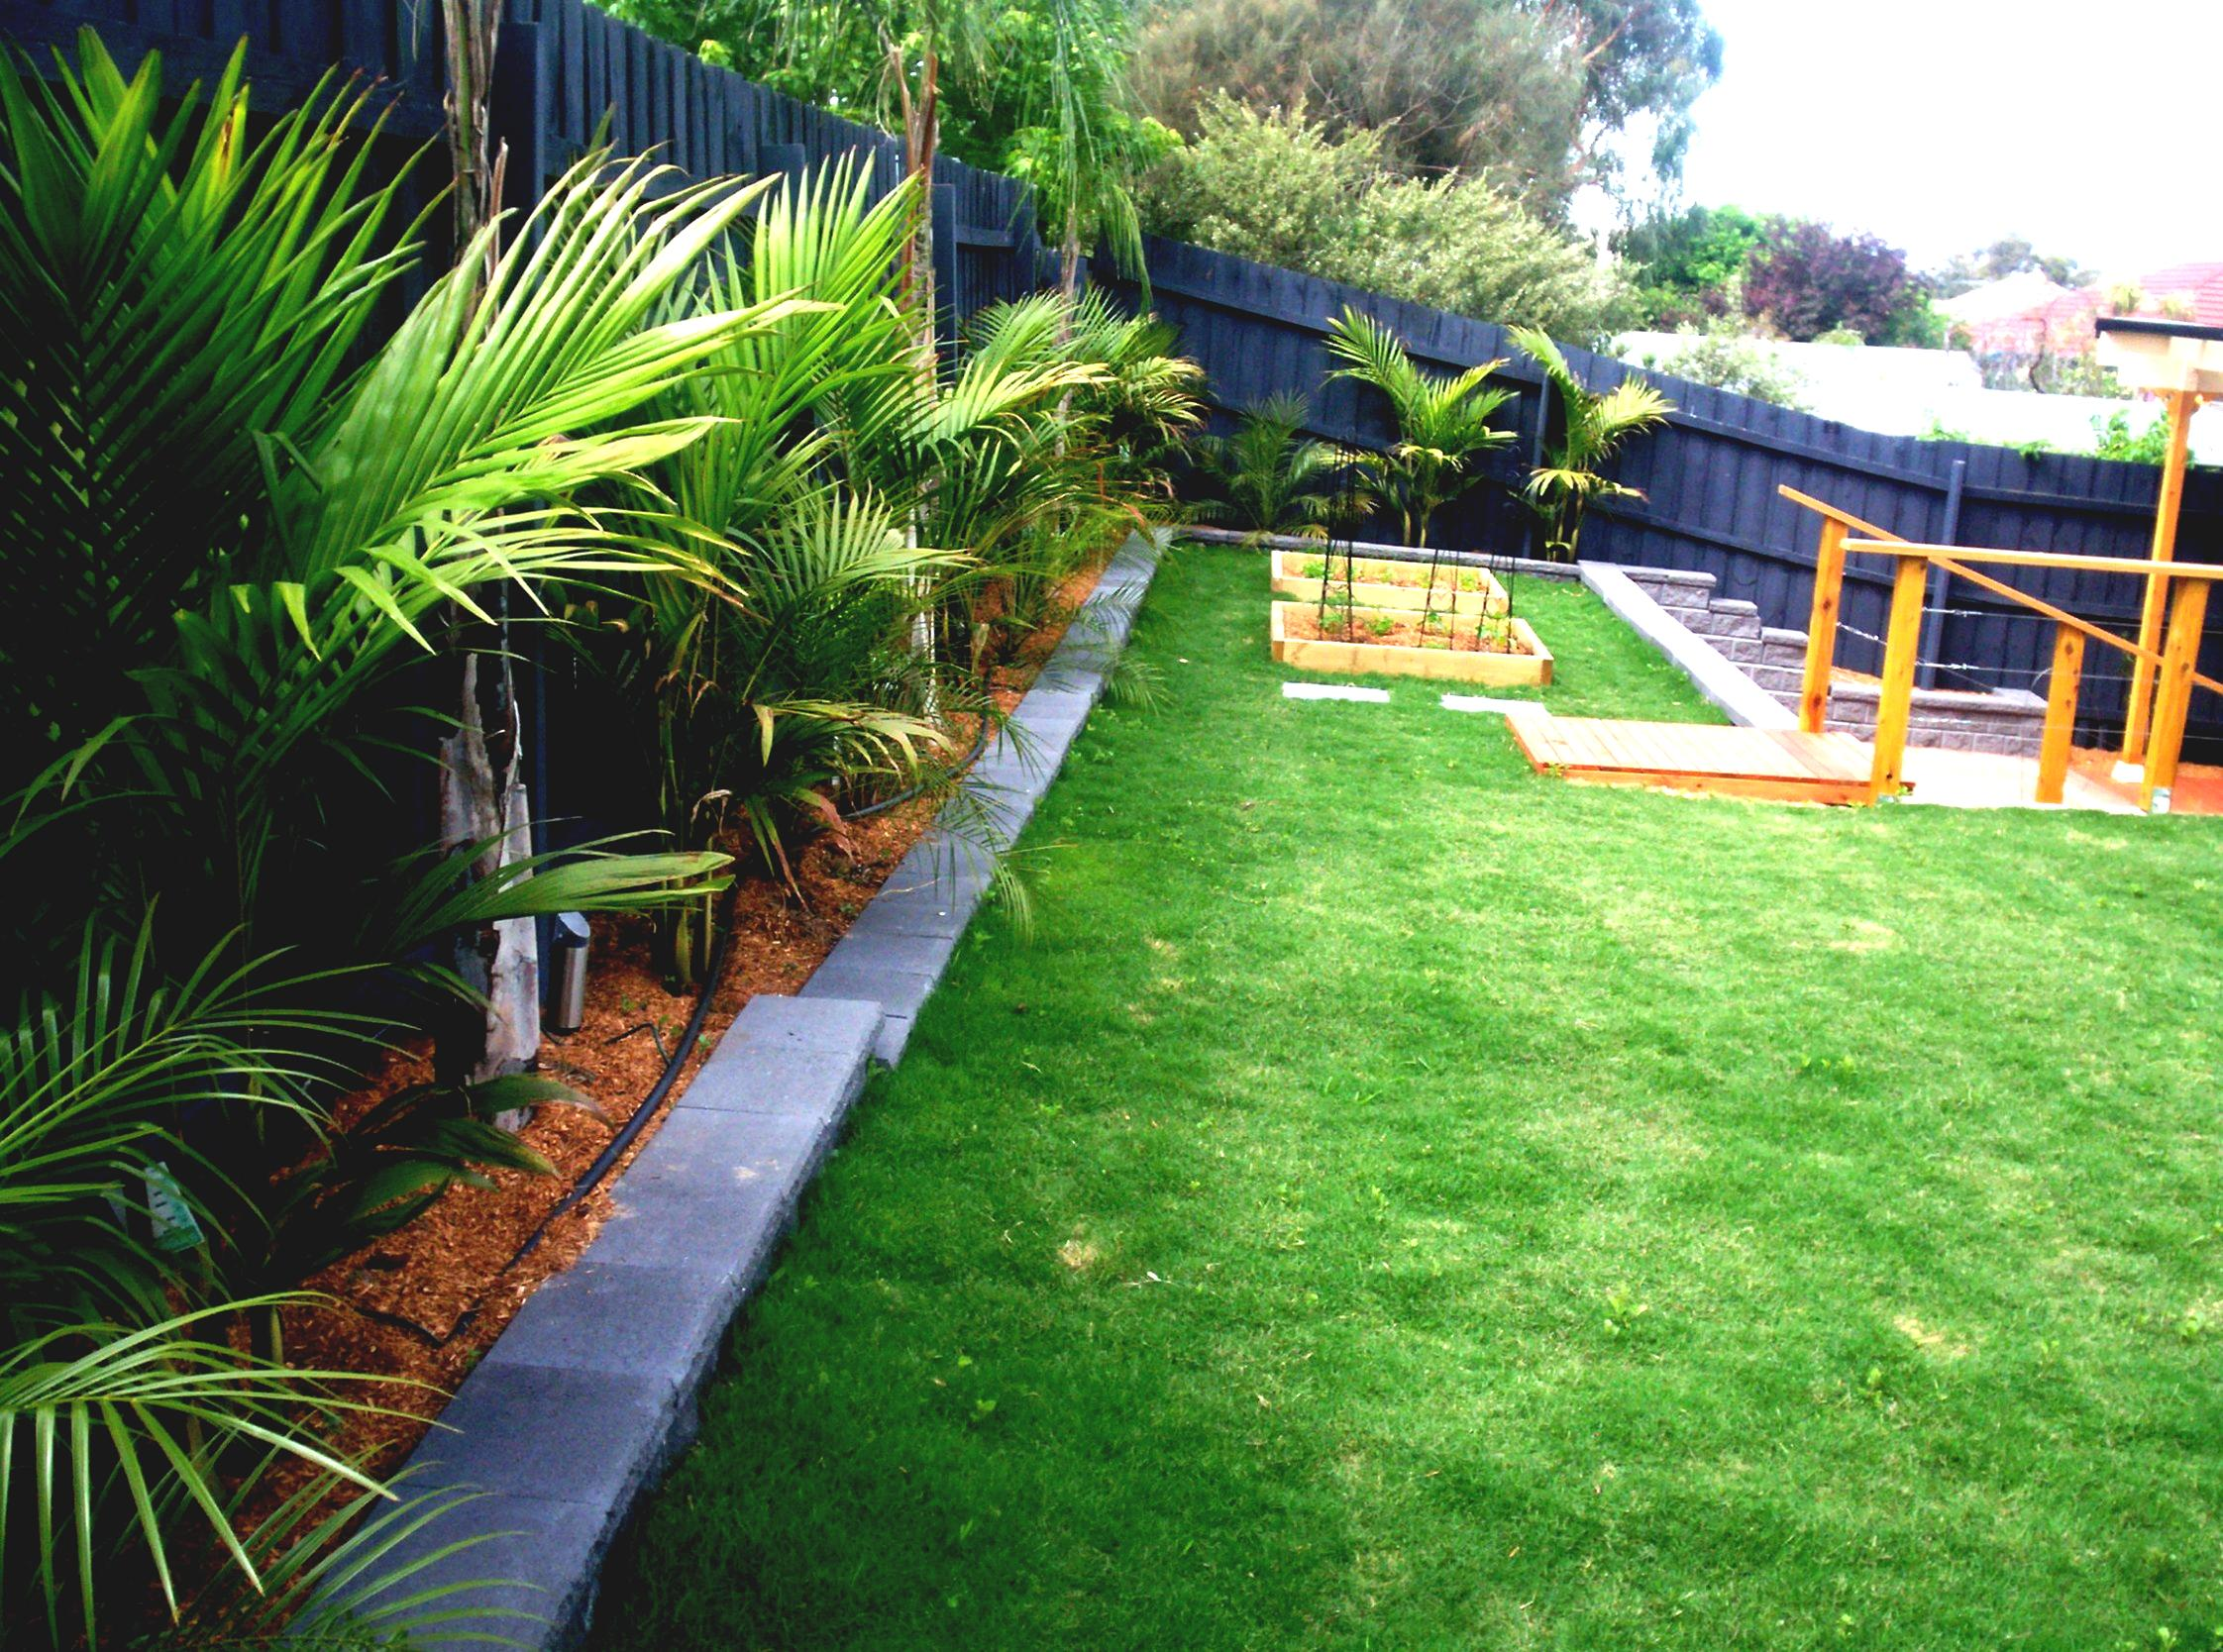 Simple Backyard Ideas: Earning a Great Place to Have Good ... on Cool Backyard Designs id=12063